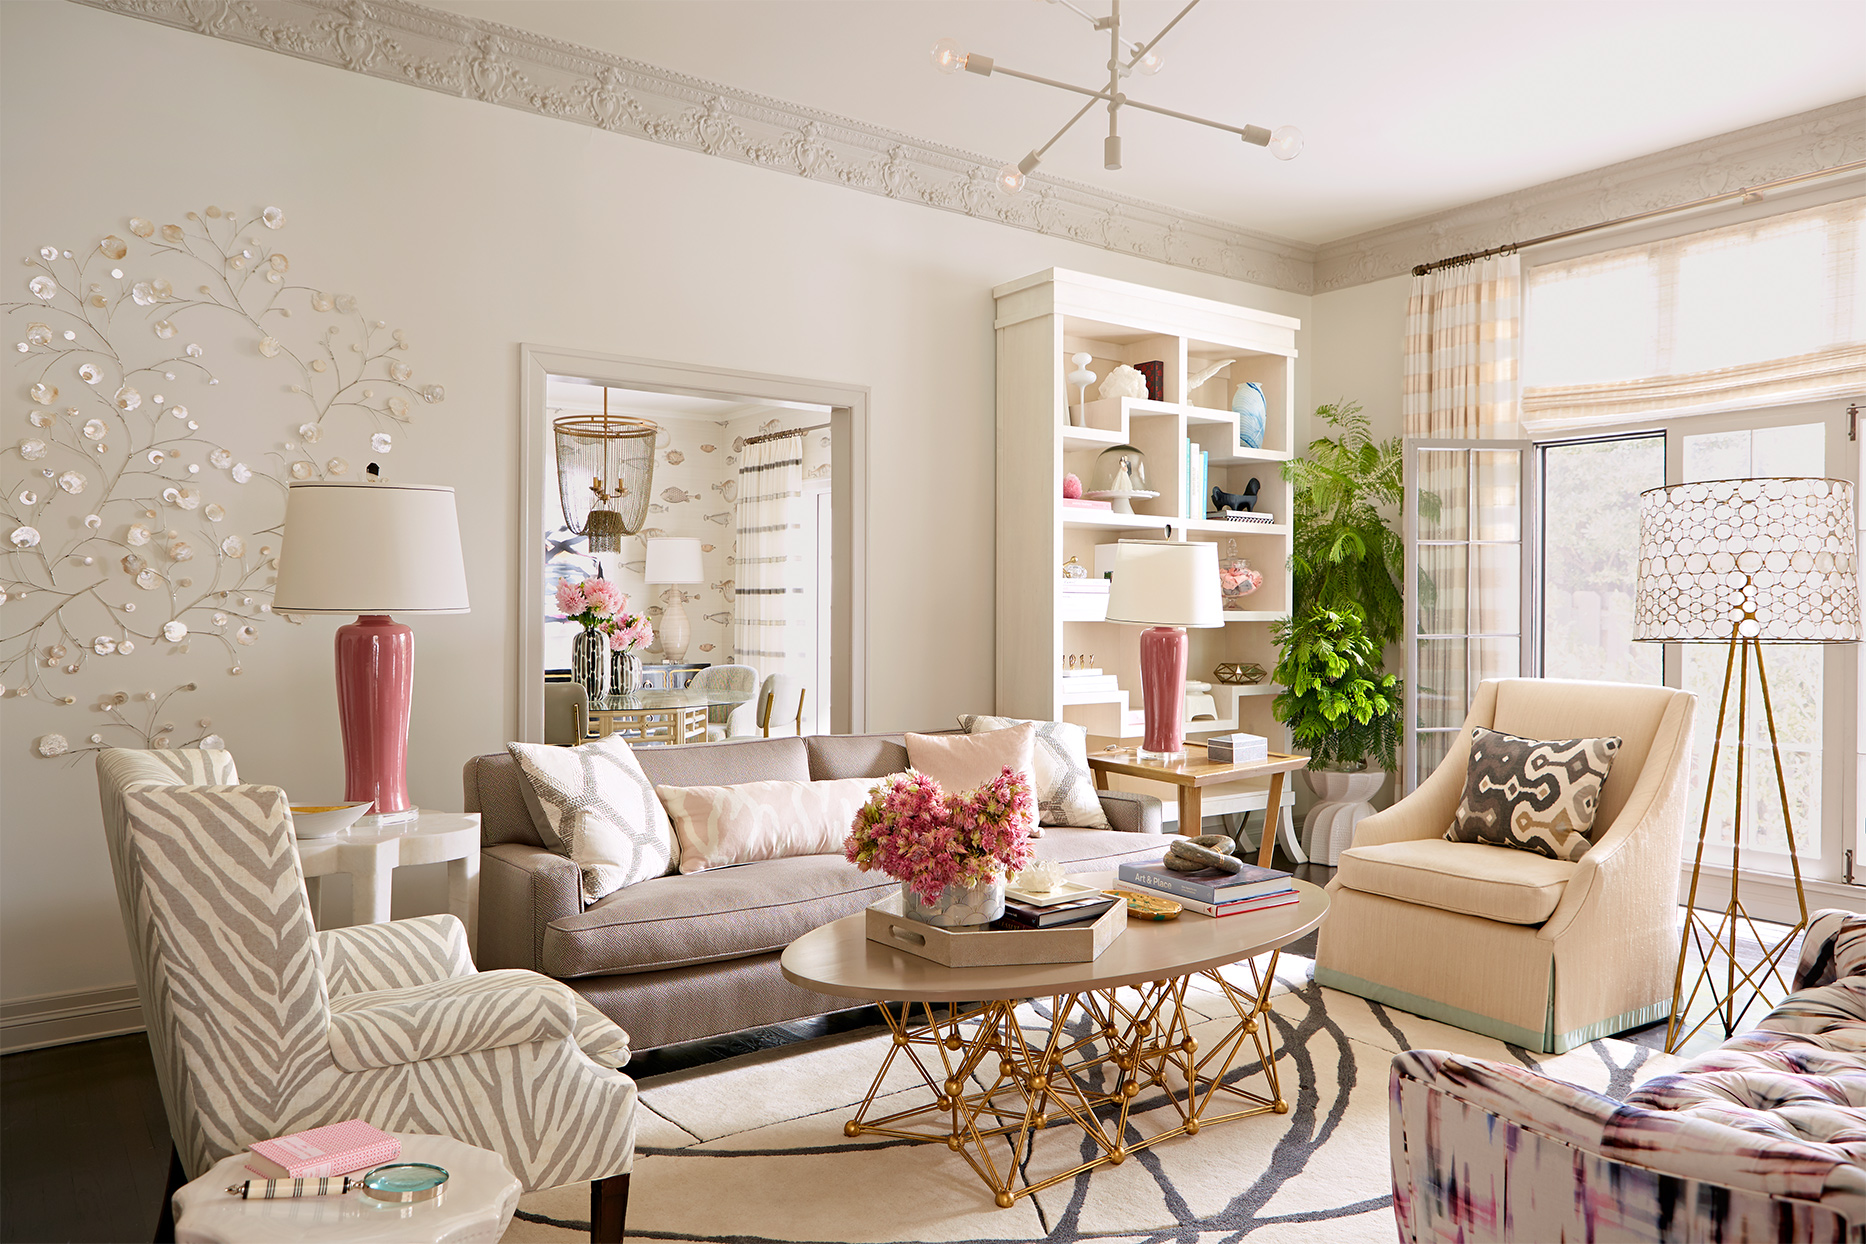 25 Best Small Living Room Decor And Design Ideas For 2019: Our Best Neutral Living Room Color Ideas